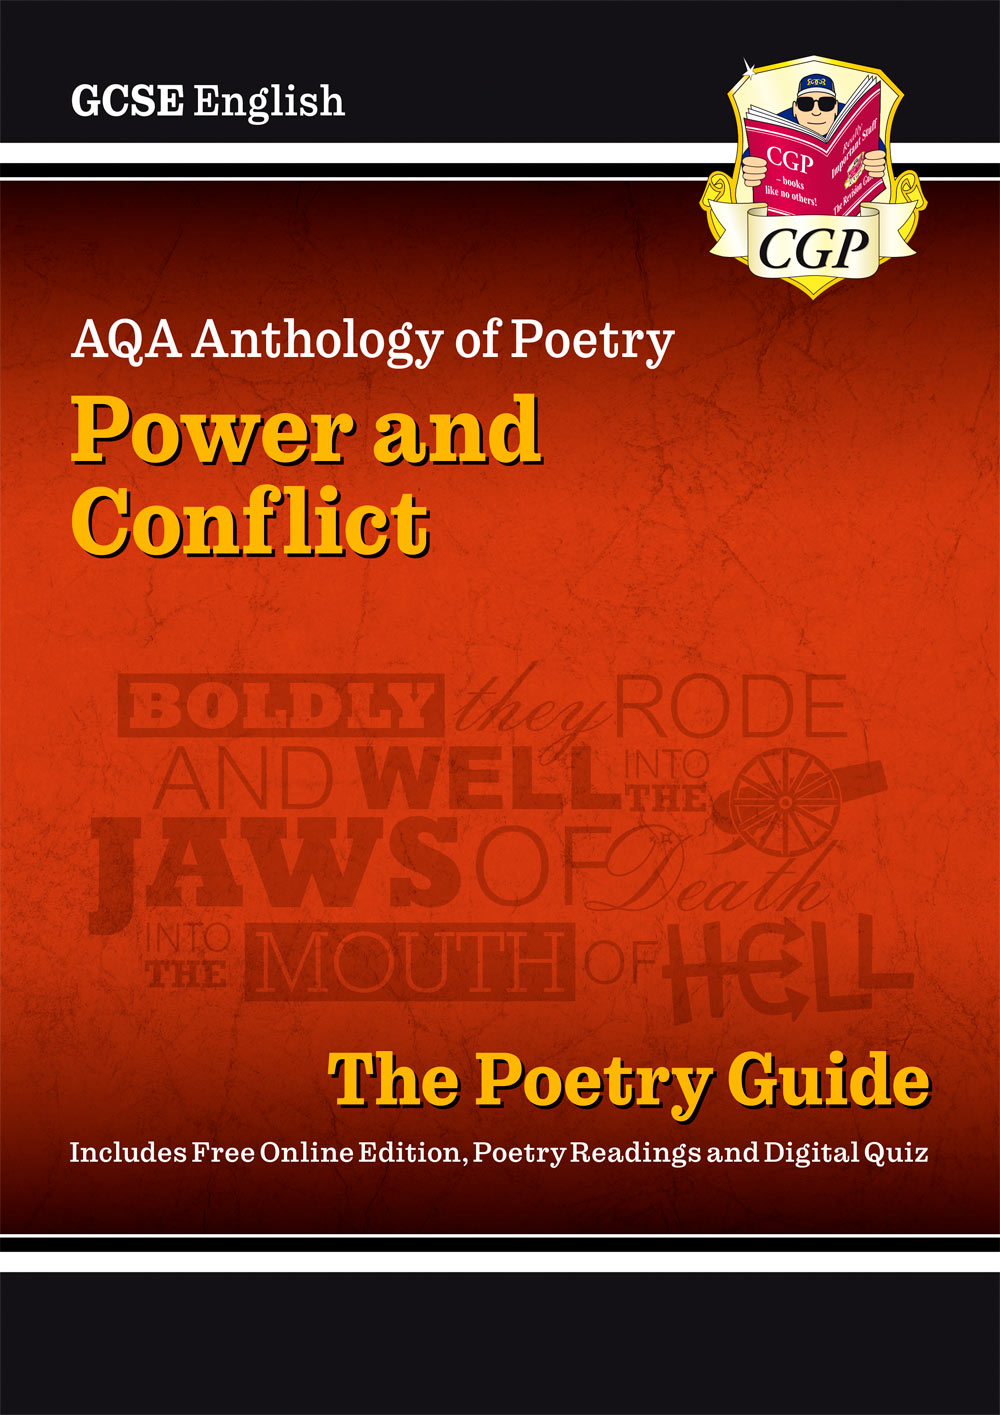 ACHR44 - New GCSE English AQA Poetry Guide - Power & Conflict Anthology inc. Online Edition, Audio &